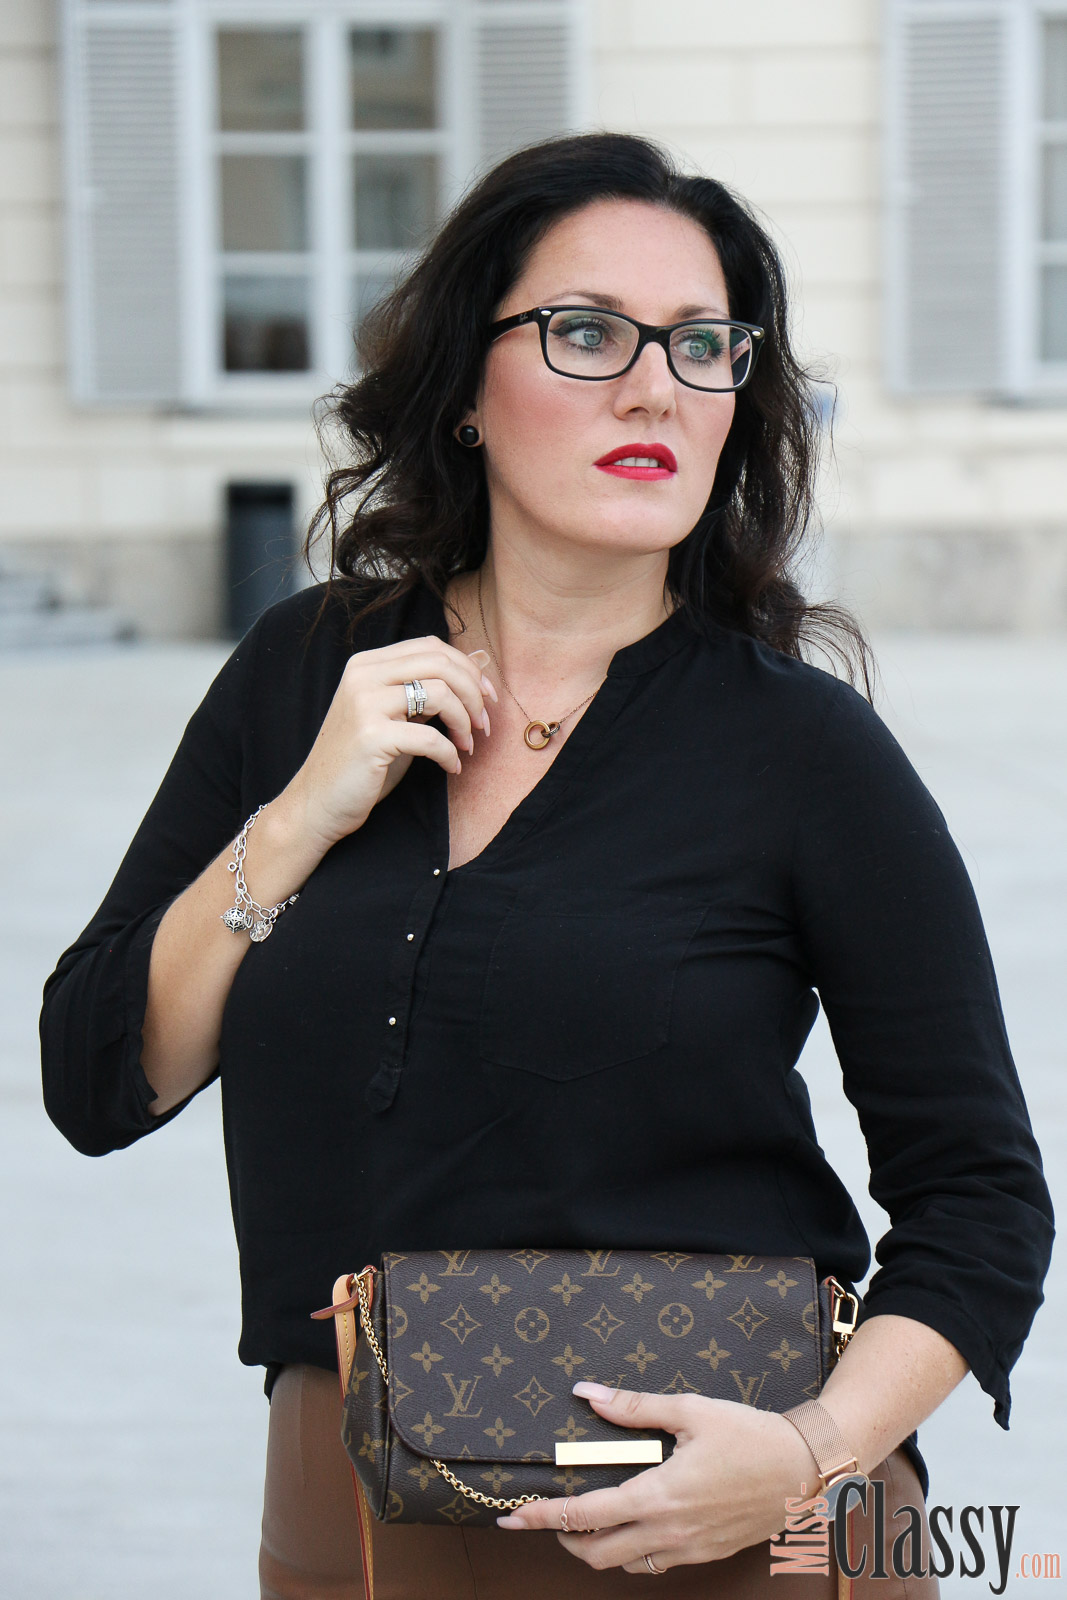 OUTFIT: Businesslook mit braunem Lederrock, Miss Classy, Fashion Blog, Lifestyle Blog, Blogger Graz, classy, Lederrock, schwarze Bluse von Zara, Businesslook, Bürooutfit, Favorite von Louis Vuitton, Coffee to Go, High Heels von Buffalo, Paul Hewitt, Rosegold, Brille von Ray Ban